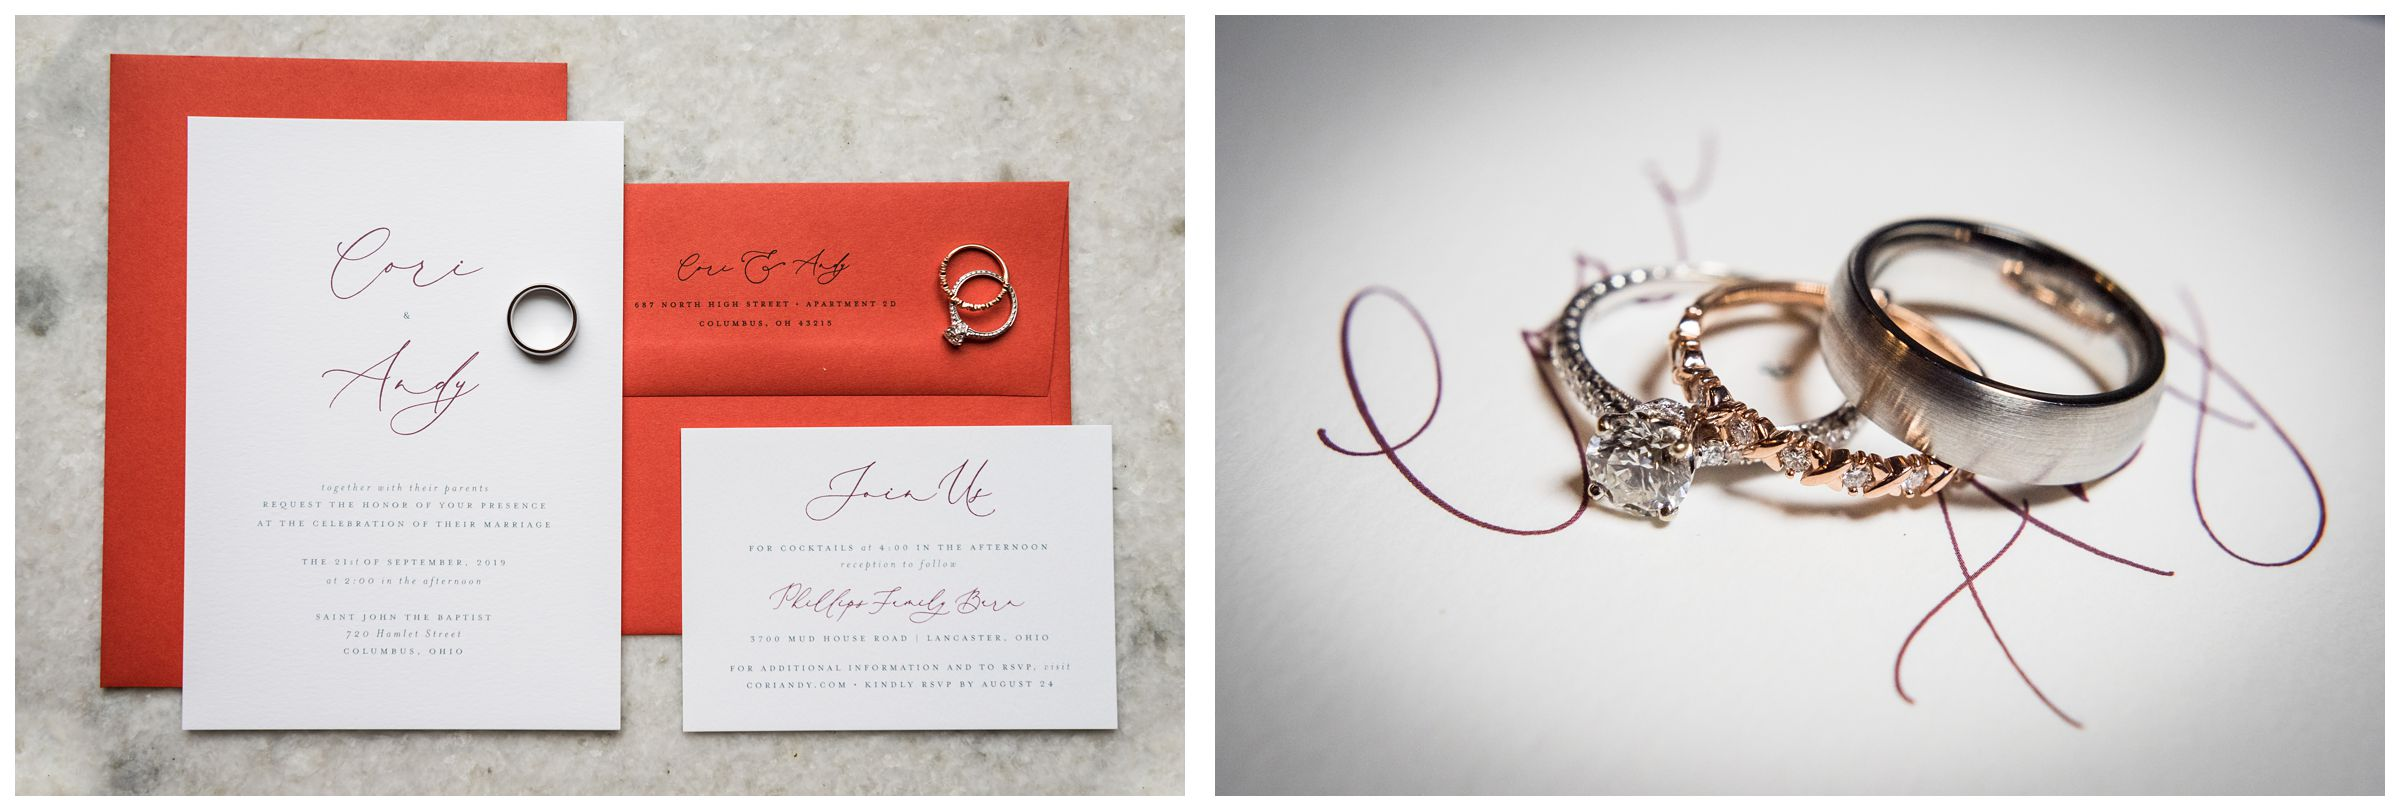 wedding rings on red and white wedding invitation suite